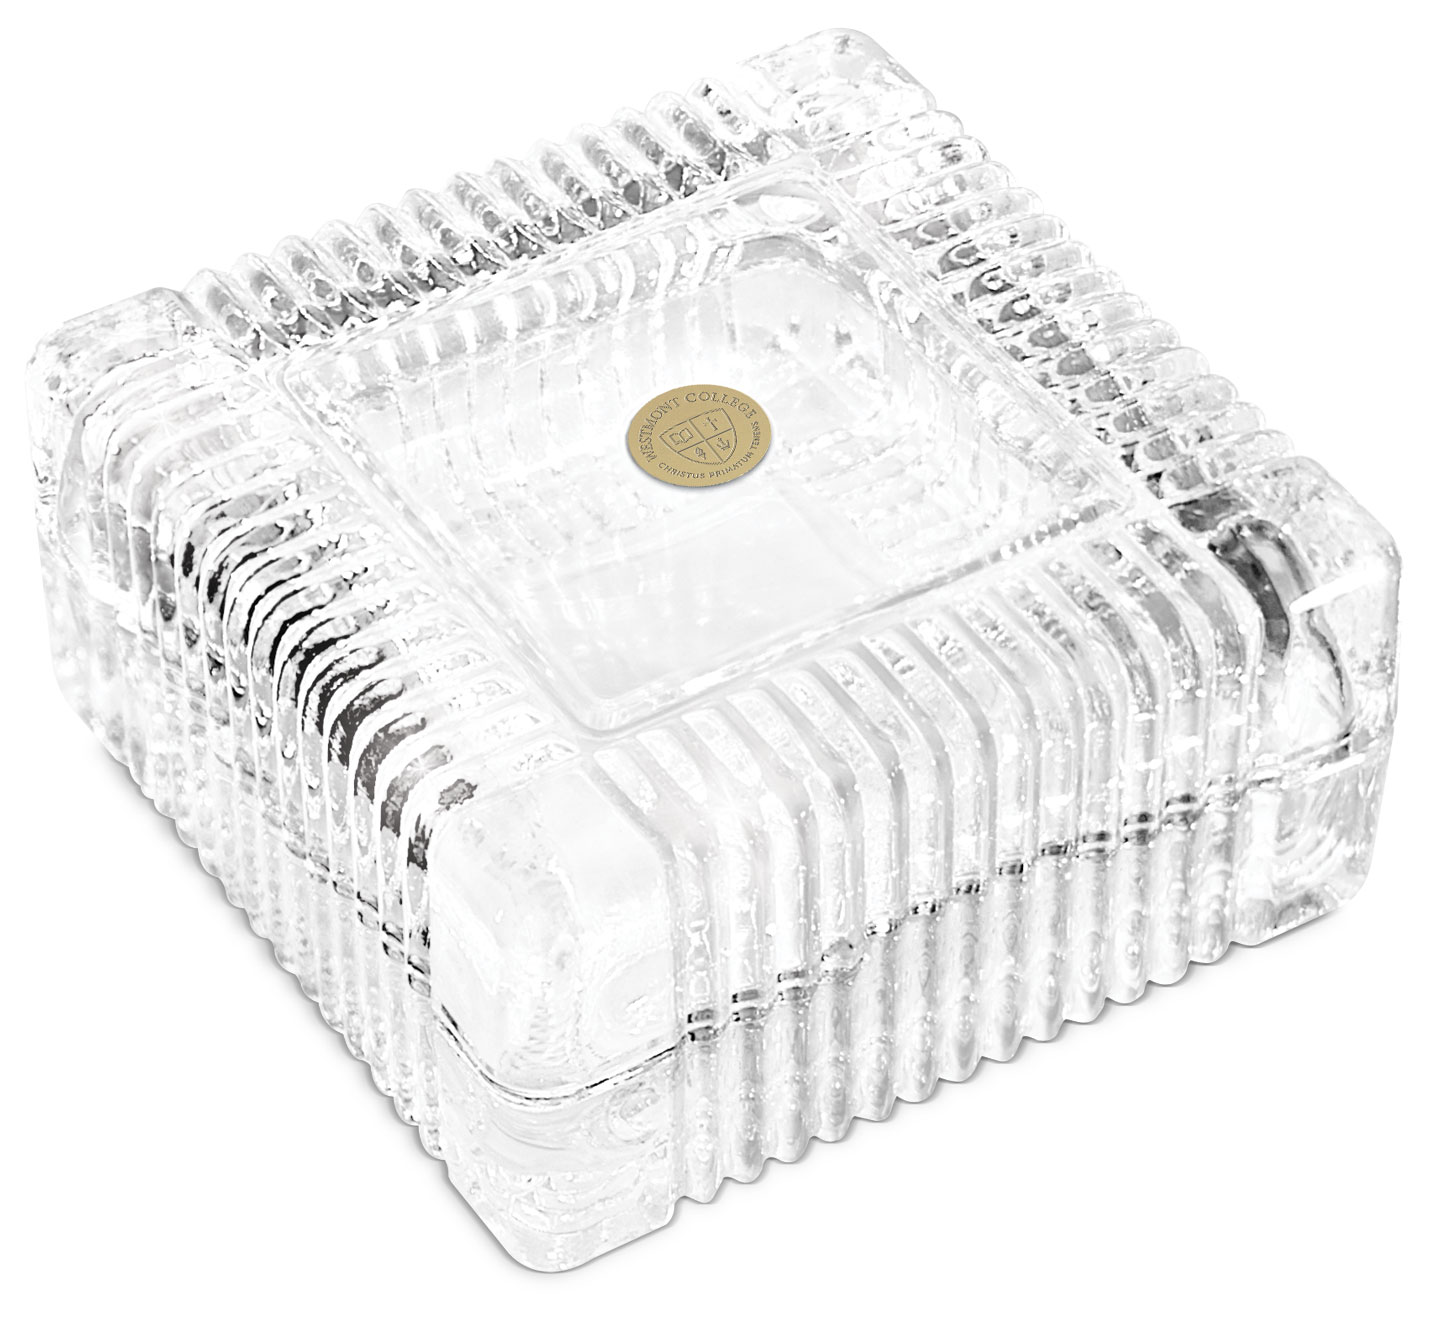 Image for the CSi C202-G Crystal Trinket Box product